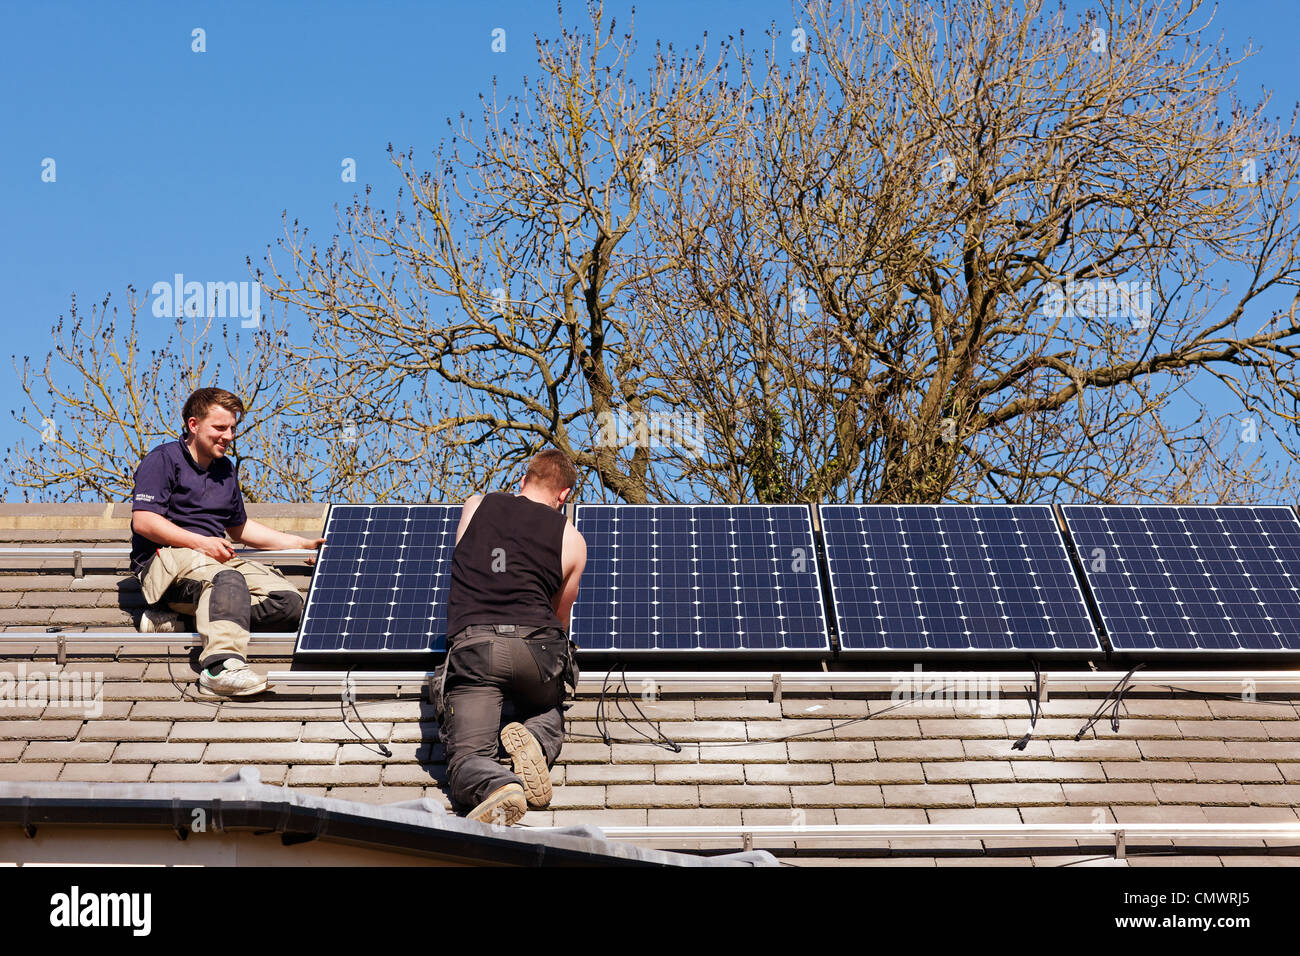 Solar panel installation on a roof - Stock Image